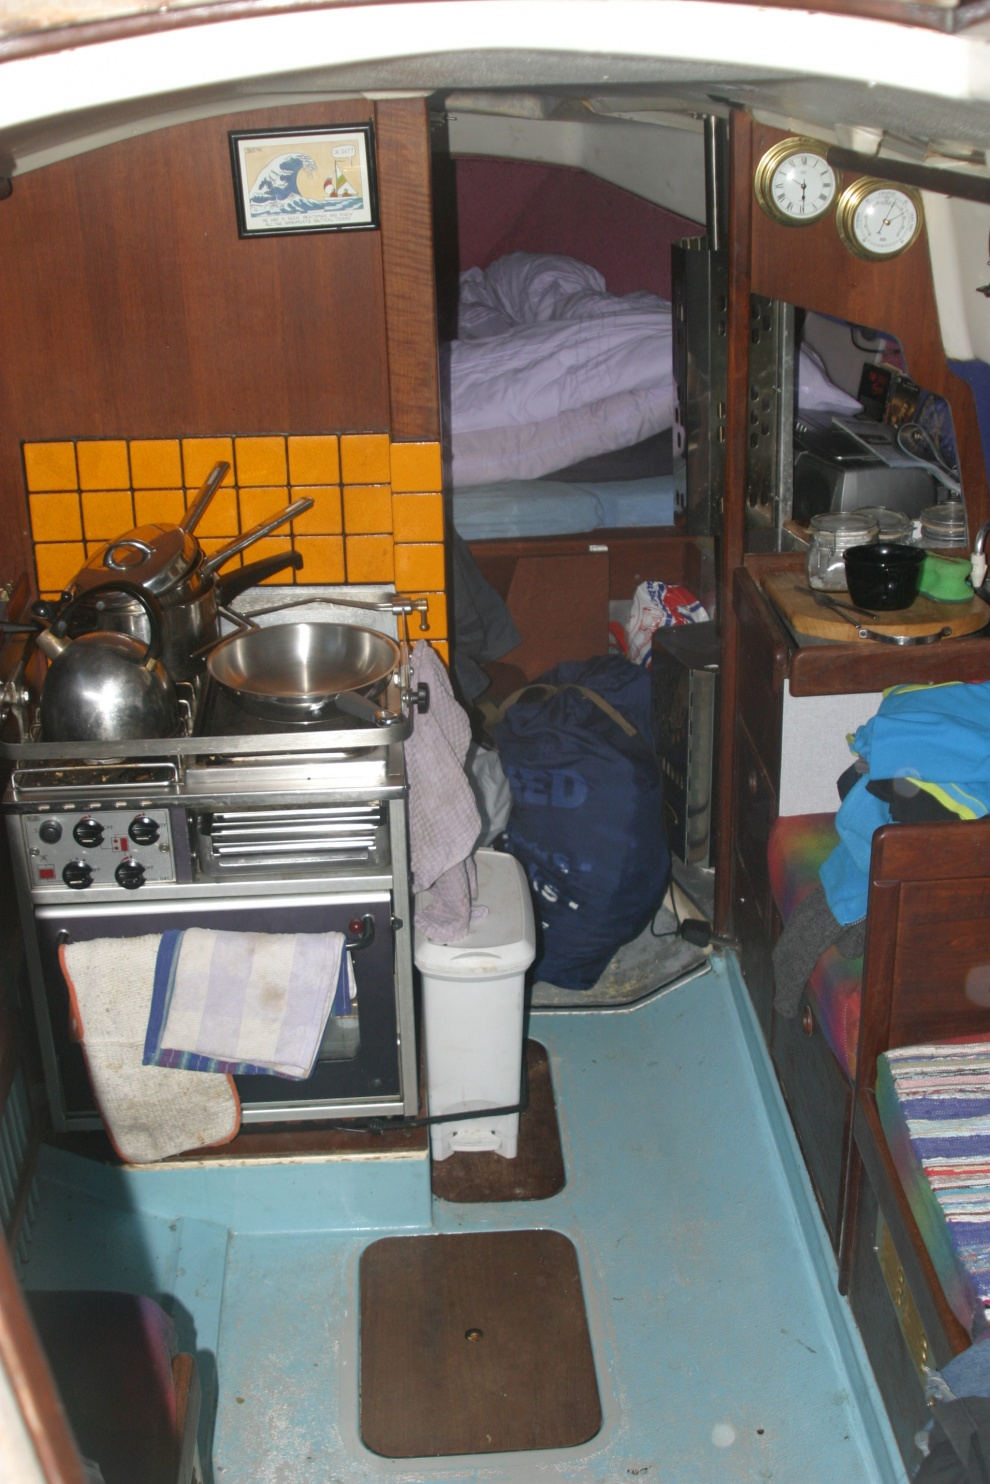 Click image for larger version  Name:Interior showing my fab cooker.jpg Views:295 Size:408.5 KB ID:73098